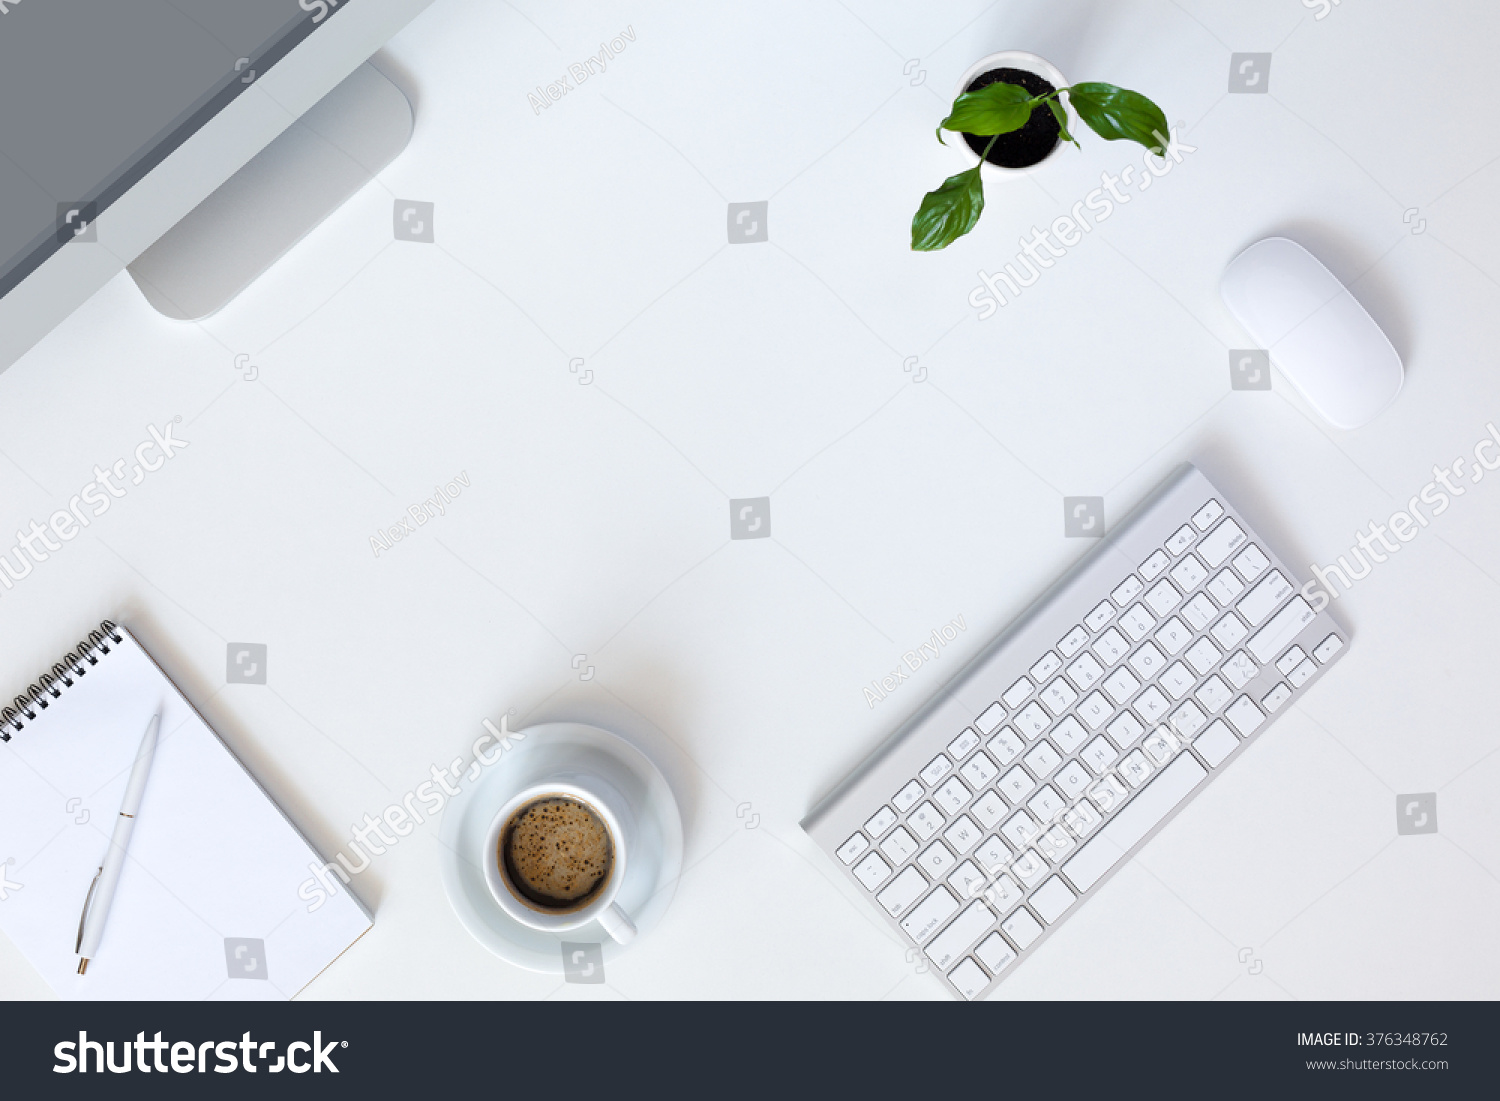 working Place on White Office Desk with large Desktop Computer